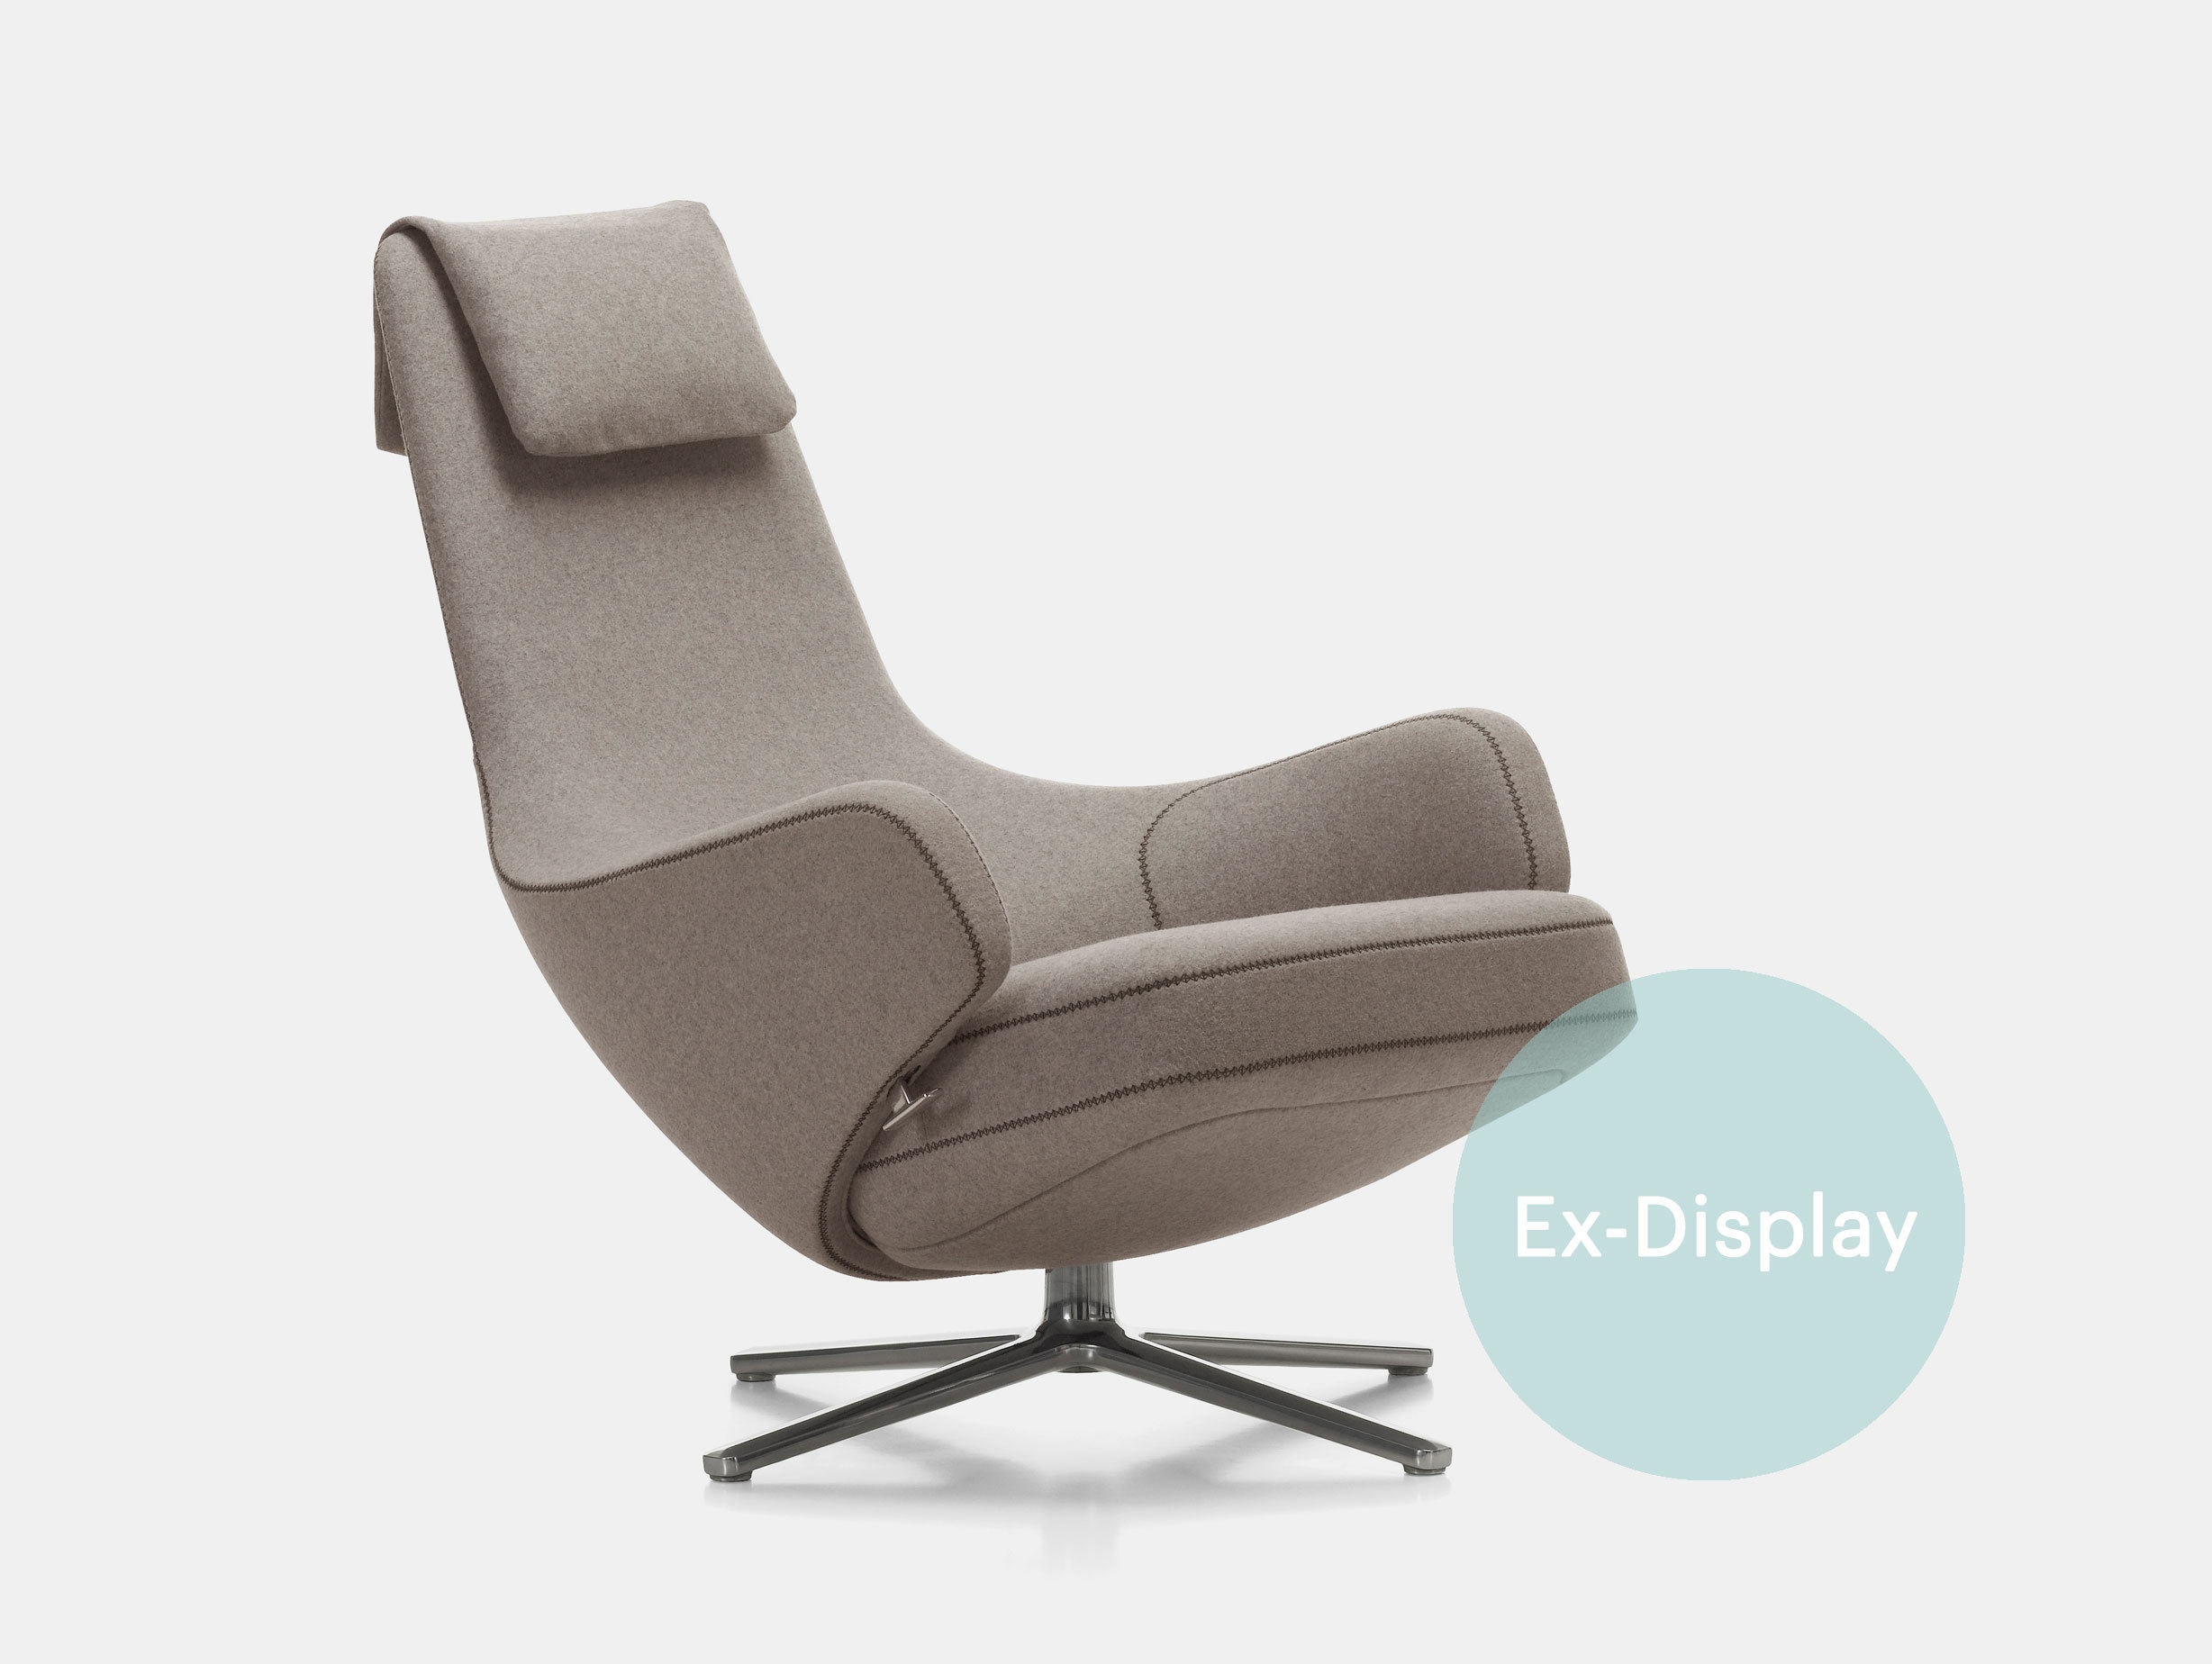 Repos Lounge Chair / 30% off at £2268 image 1